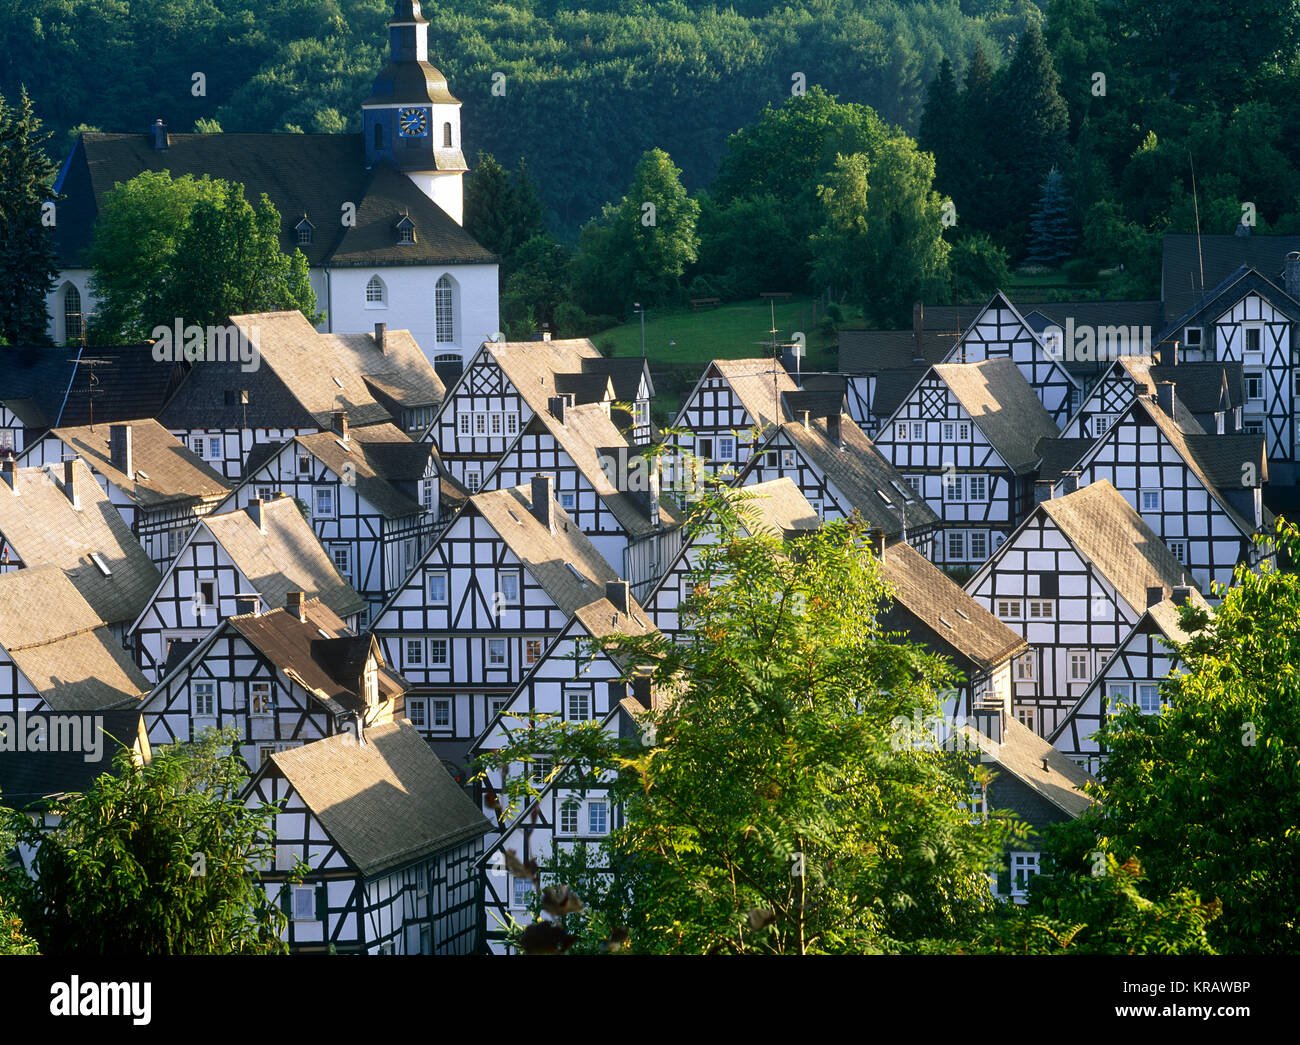 Freudenberg Alter Flecken, North Rhine Westphalia, Germany - Stock Image